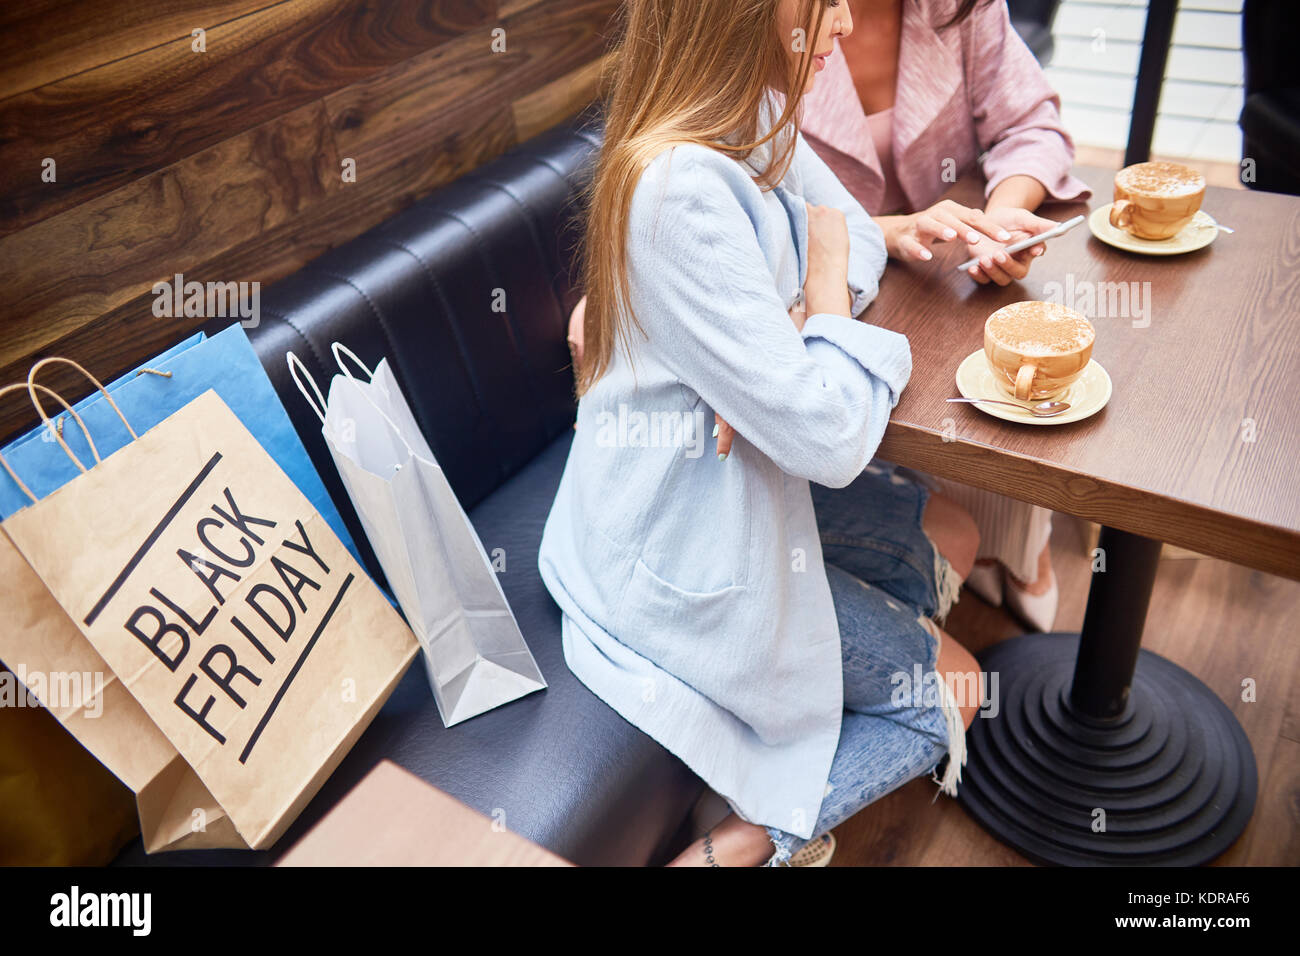 Women in Cafe of Shopping Mall - Stock Image